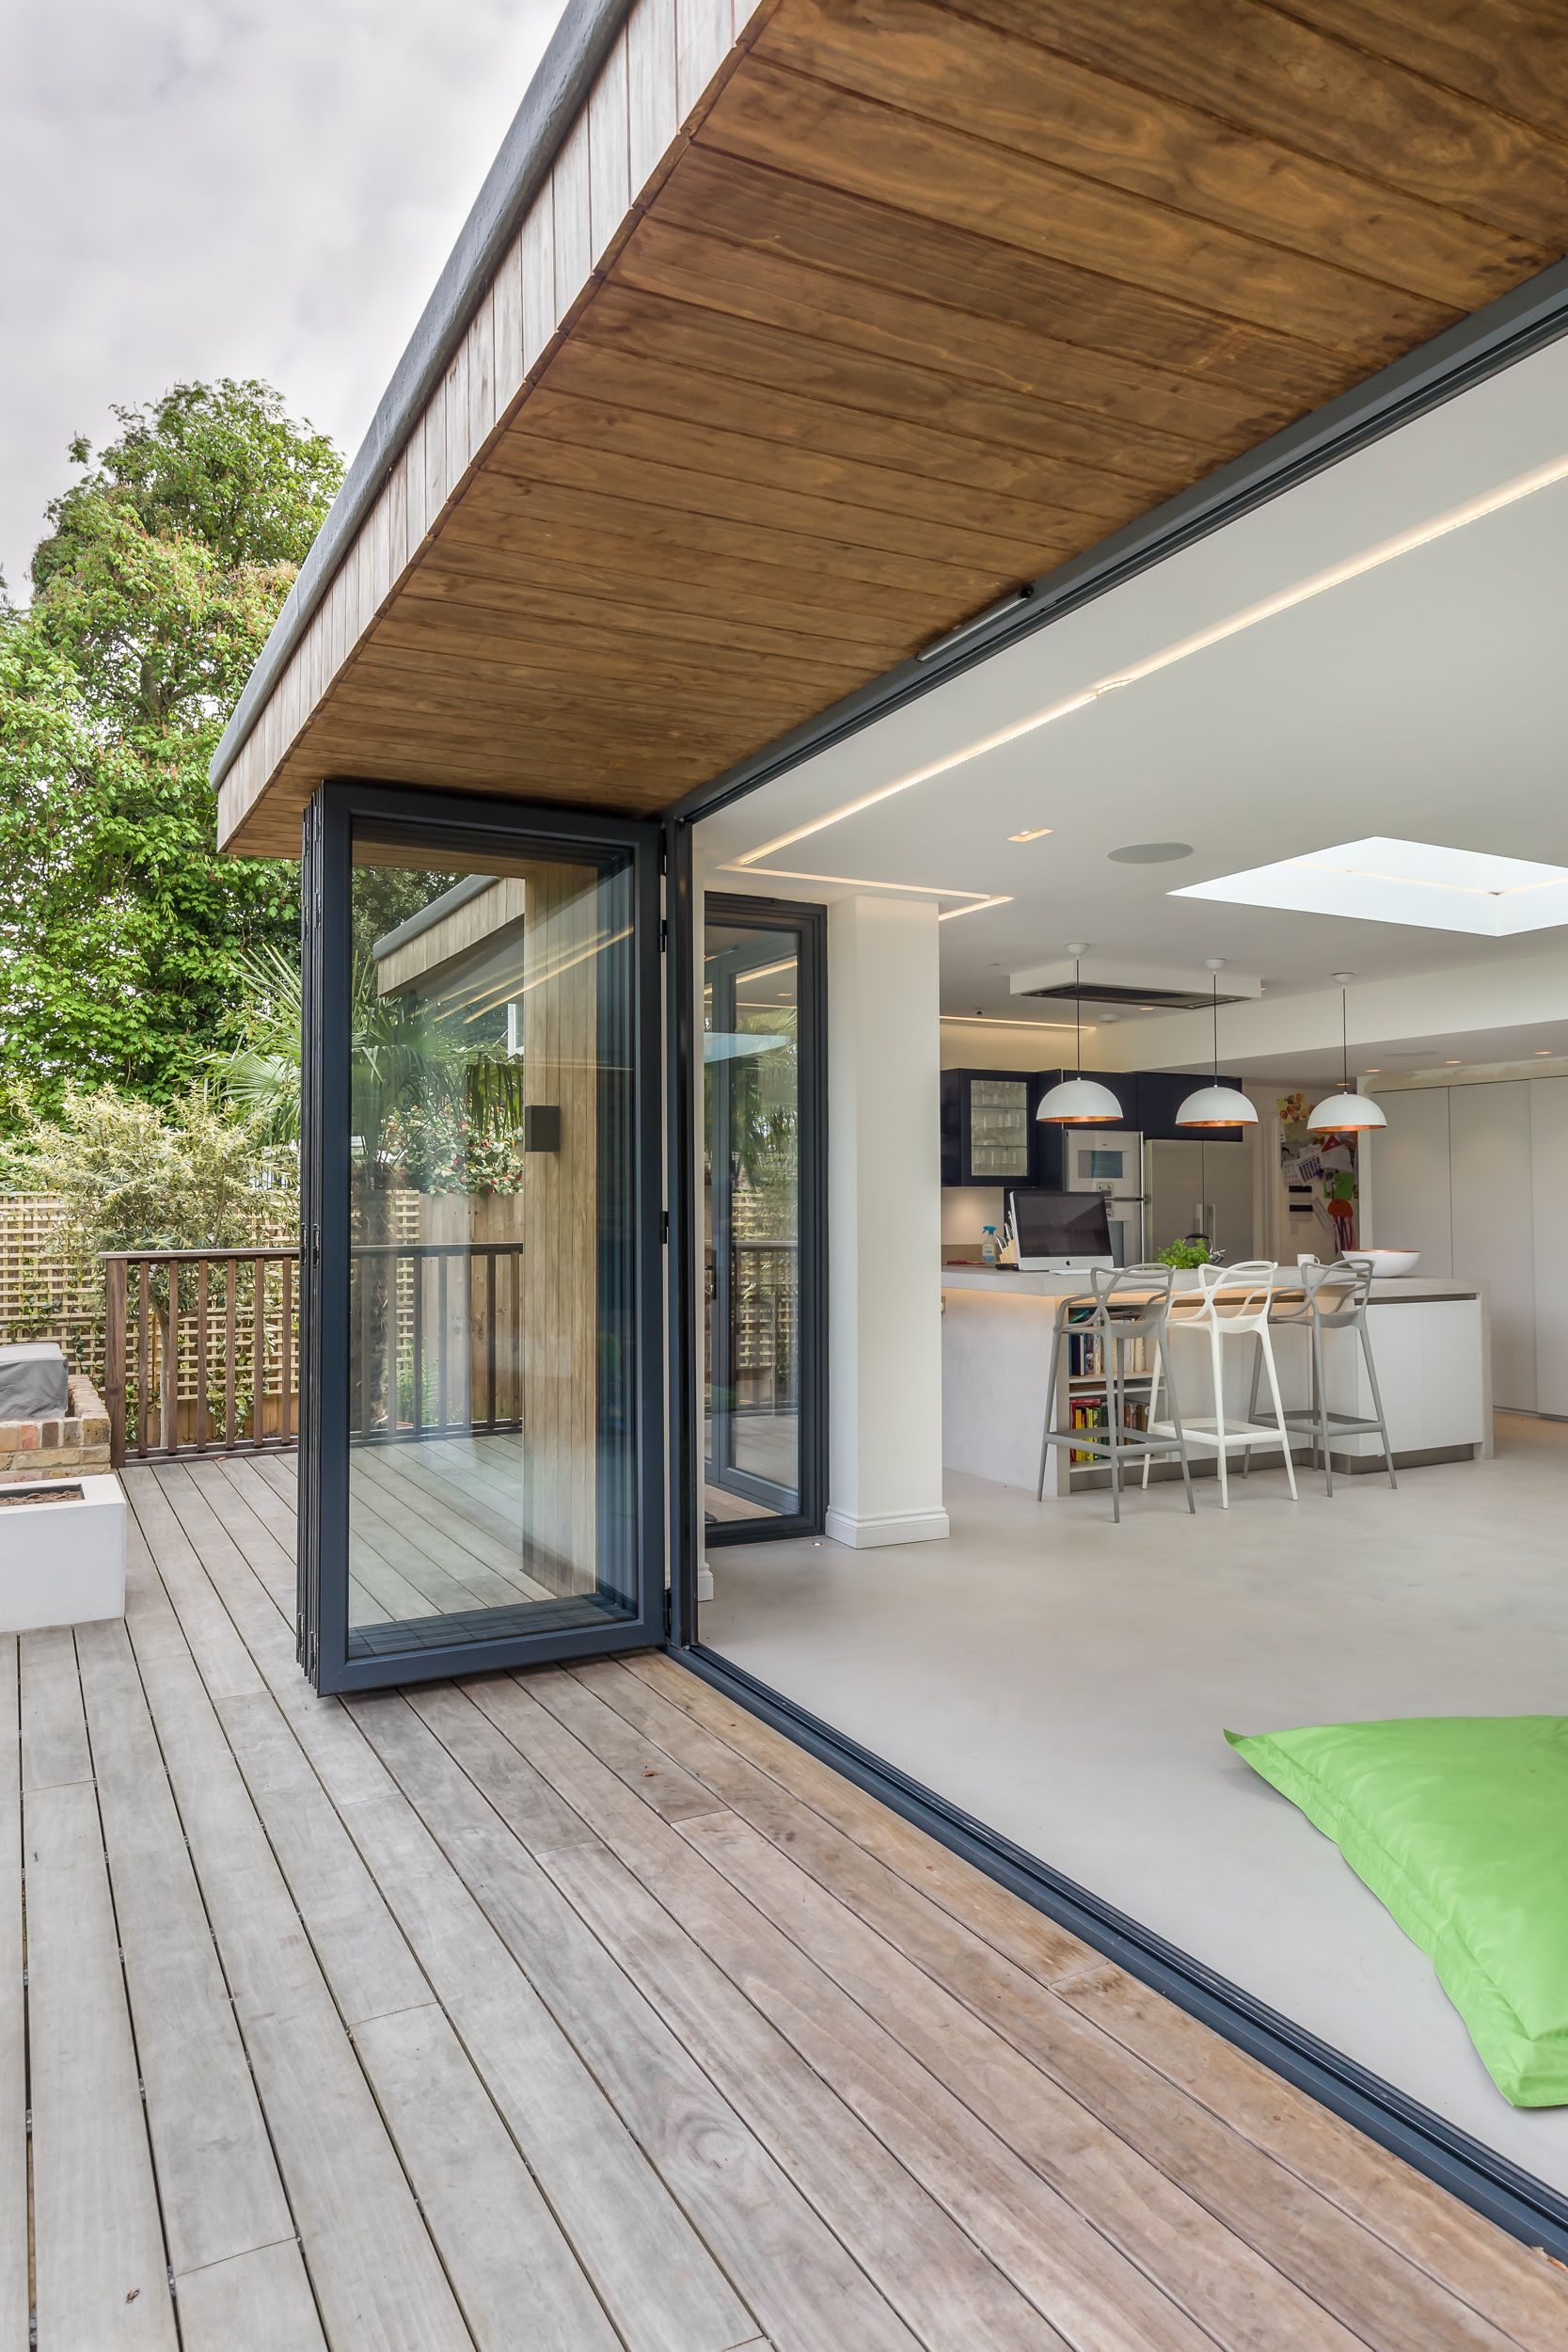 Bi Fold Doors Inside Outside Level Threshold Timber Decking Timber Clad Roof Overhang Open Plan Contempo Flat Roof Design House Exterior House Roof